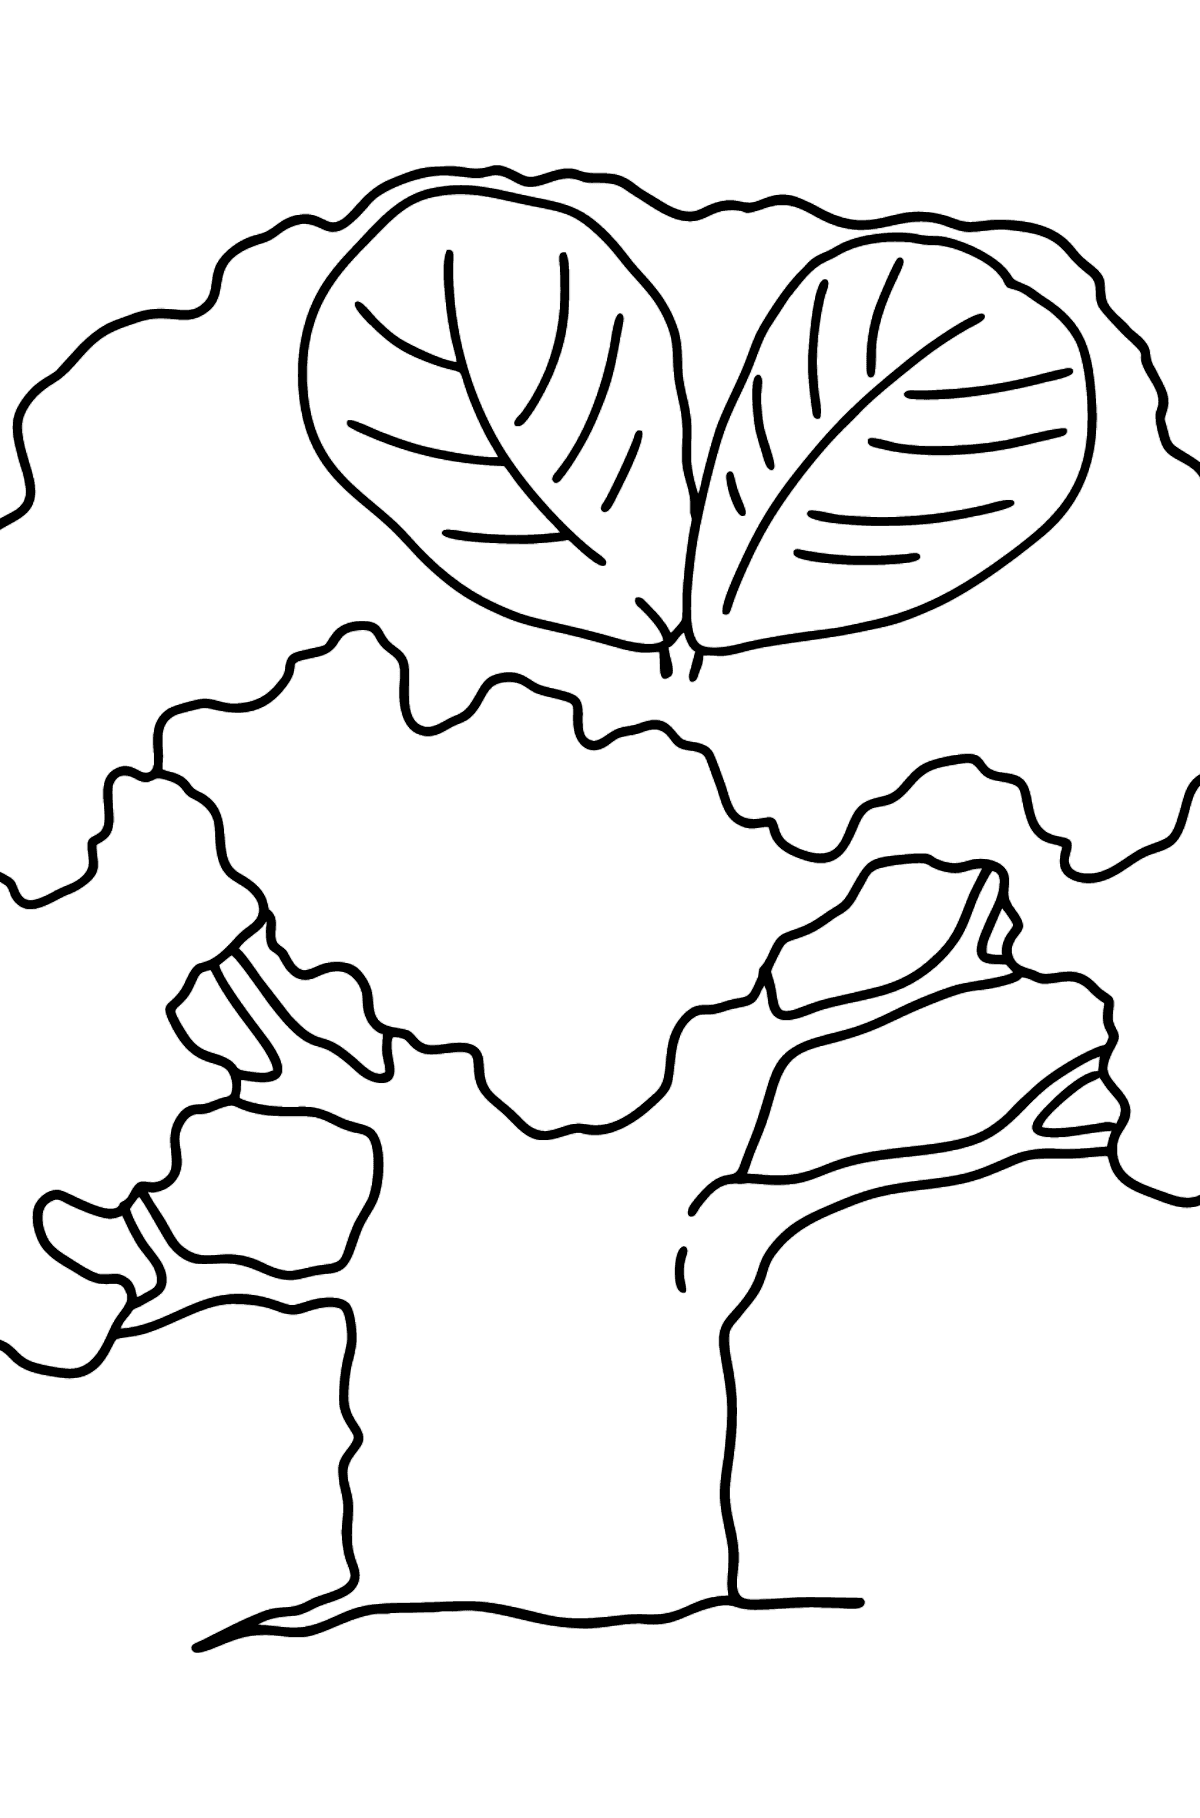 Beech coloring page - Coloring Pages for Kids